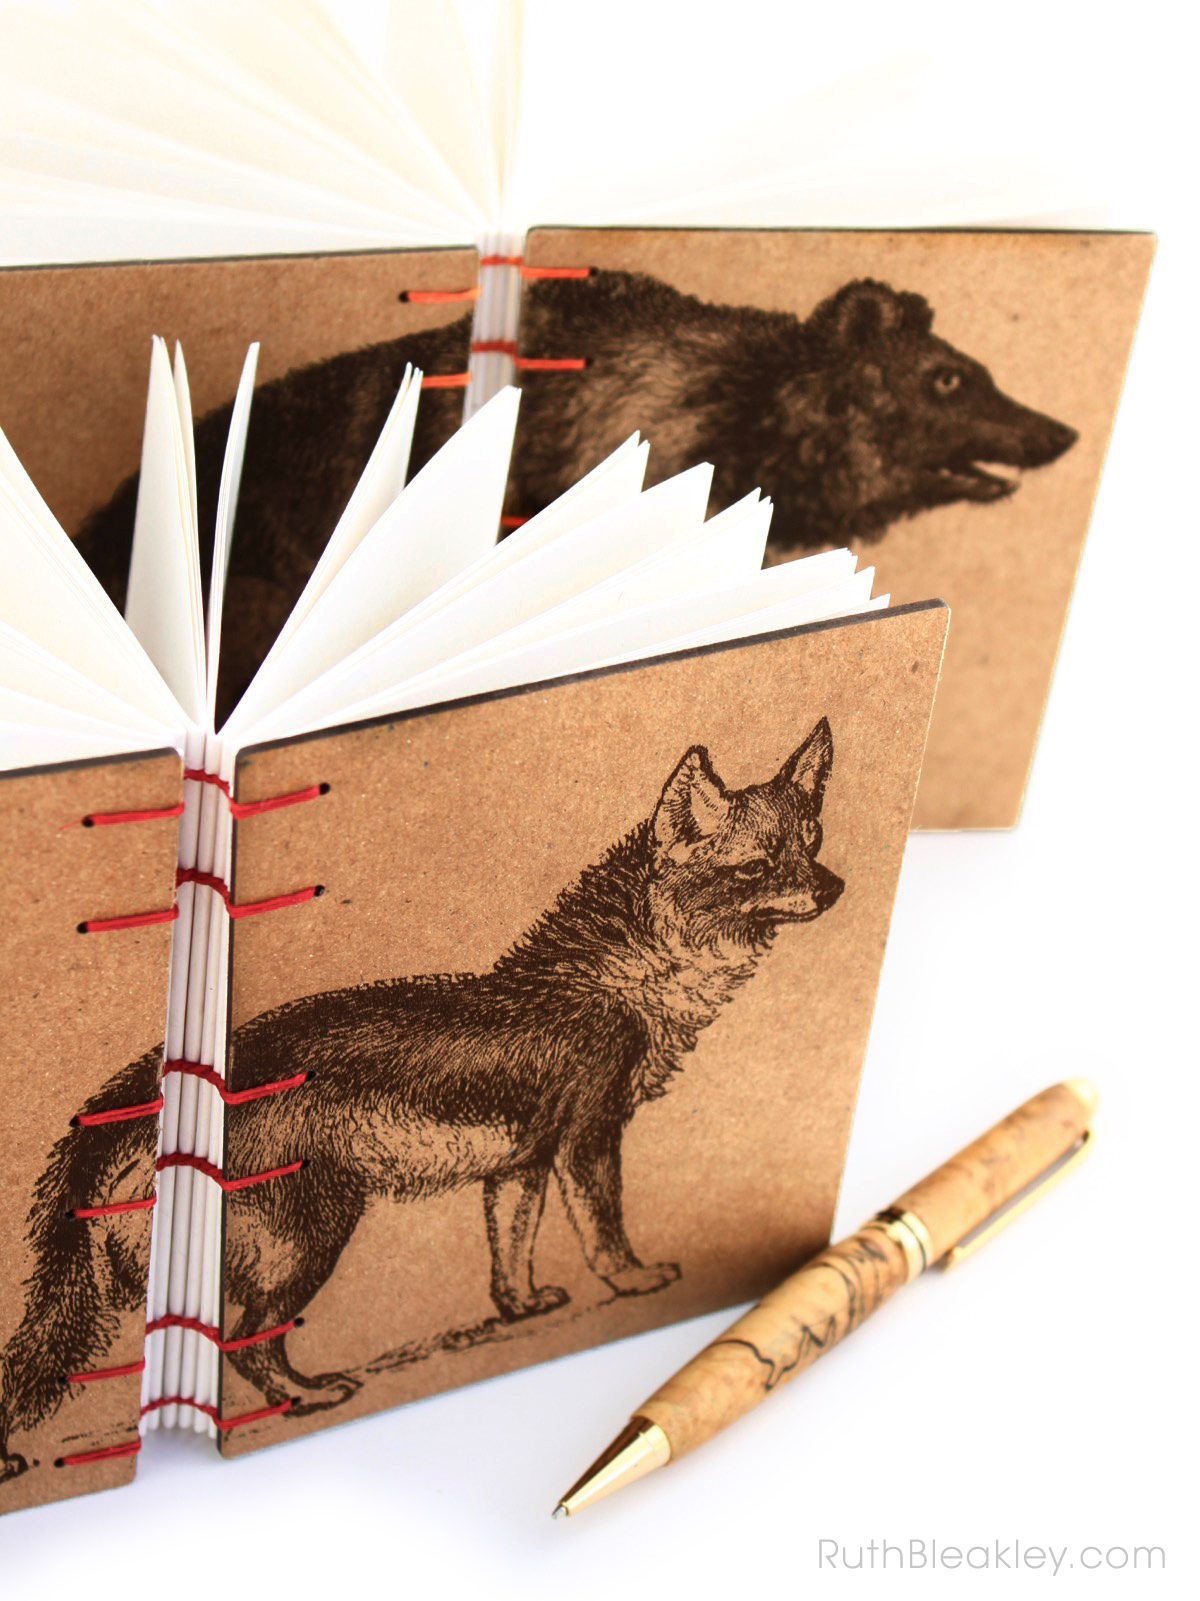 Coyote and Bear Journals handmade by American book artist Ruth Bleakley - 4